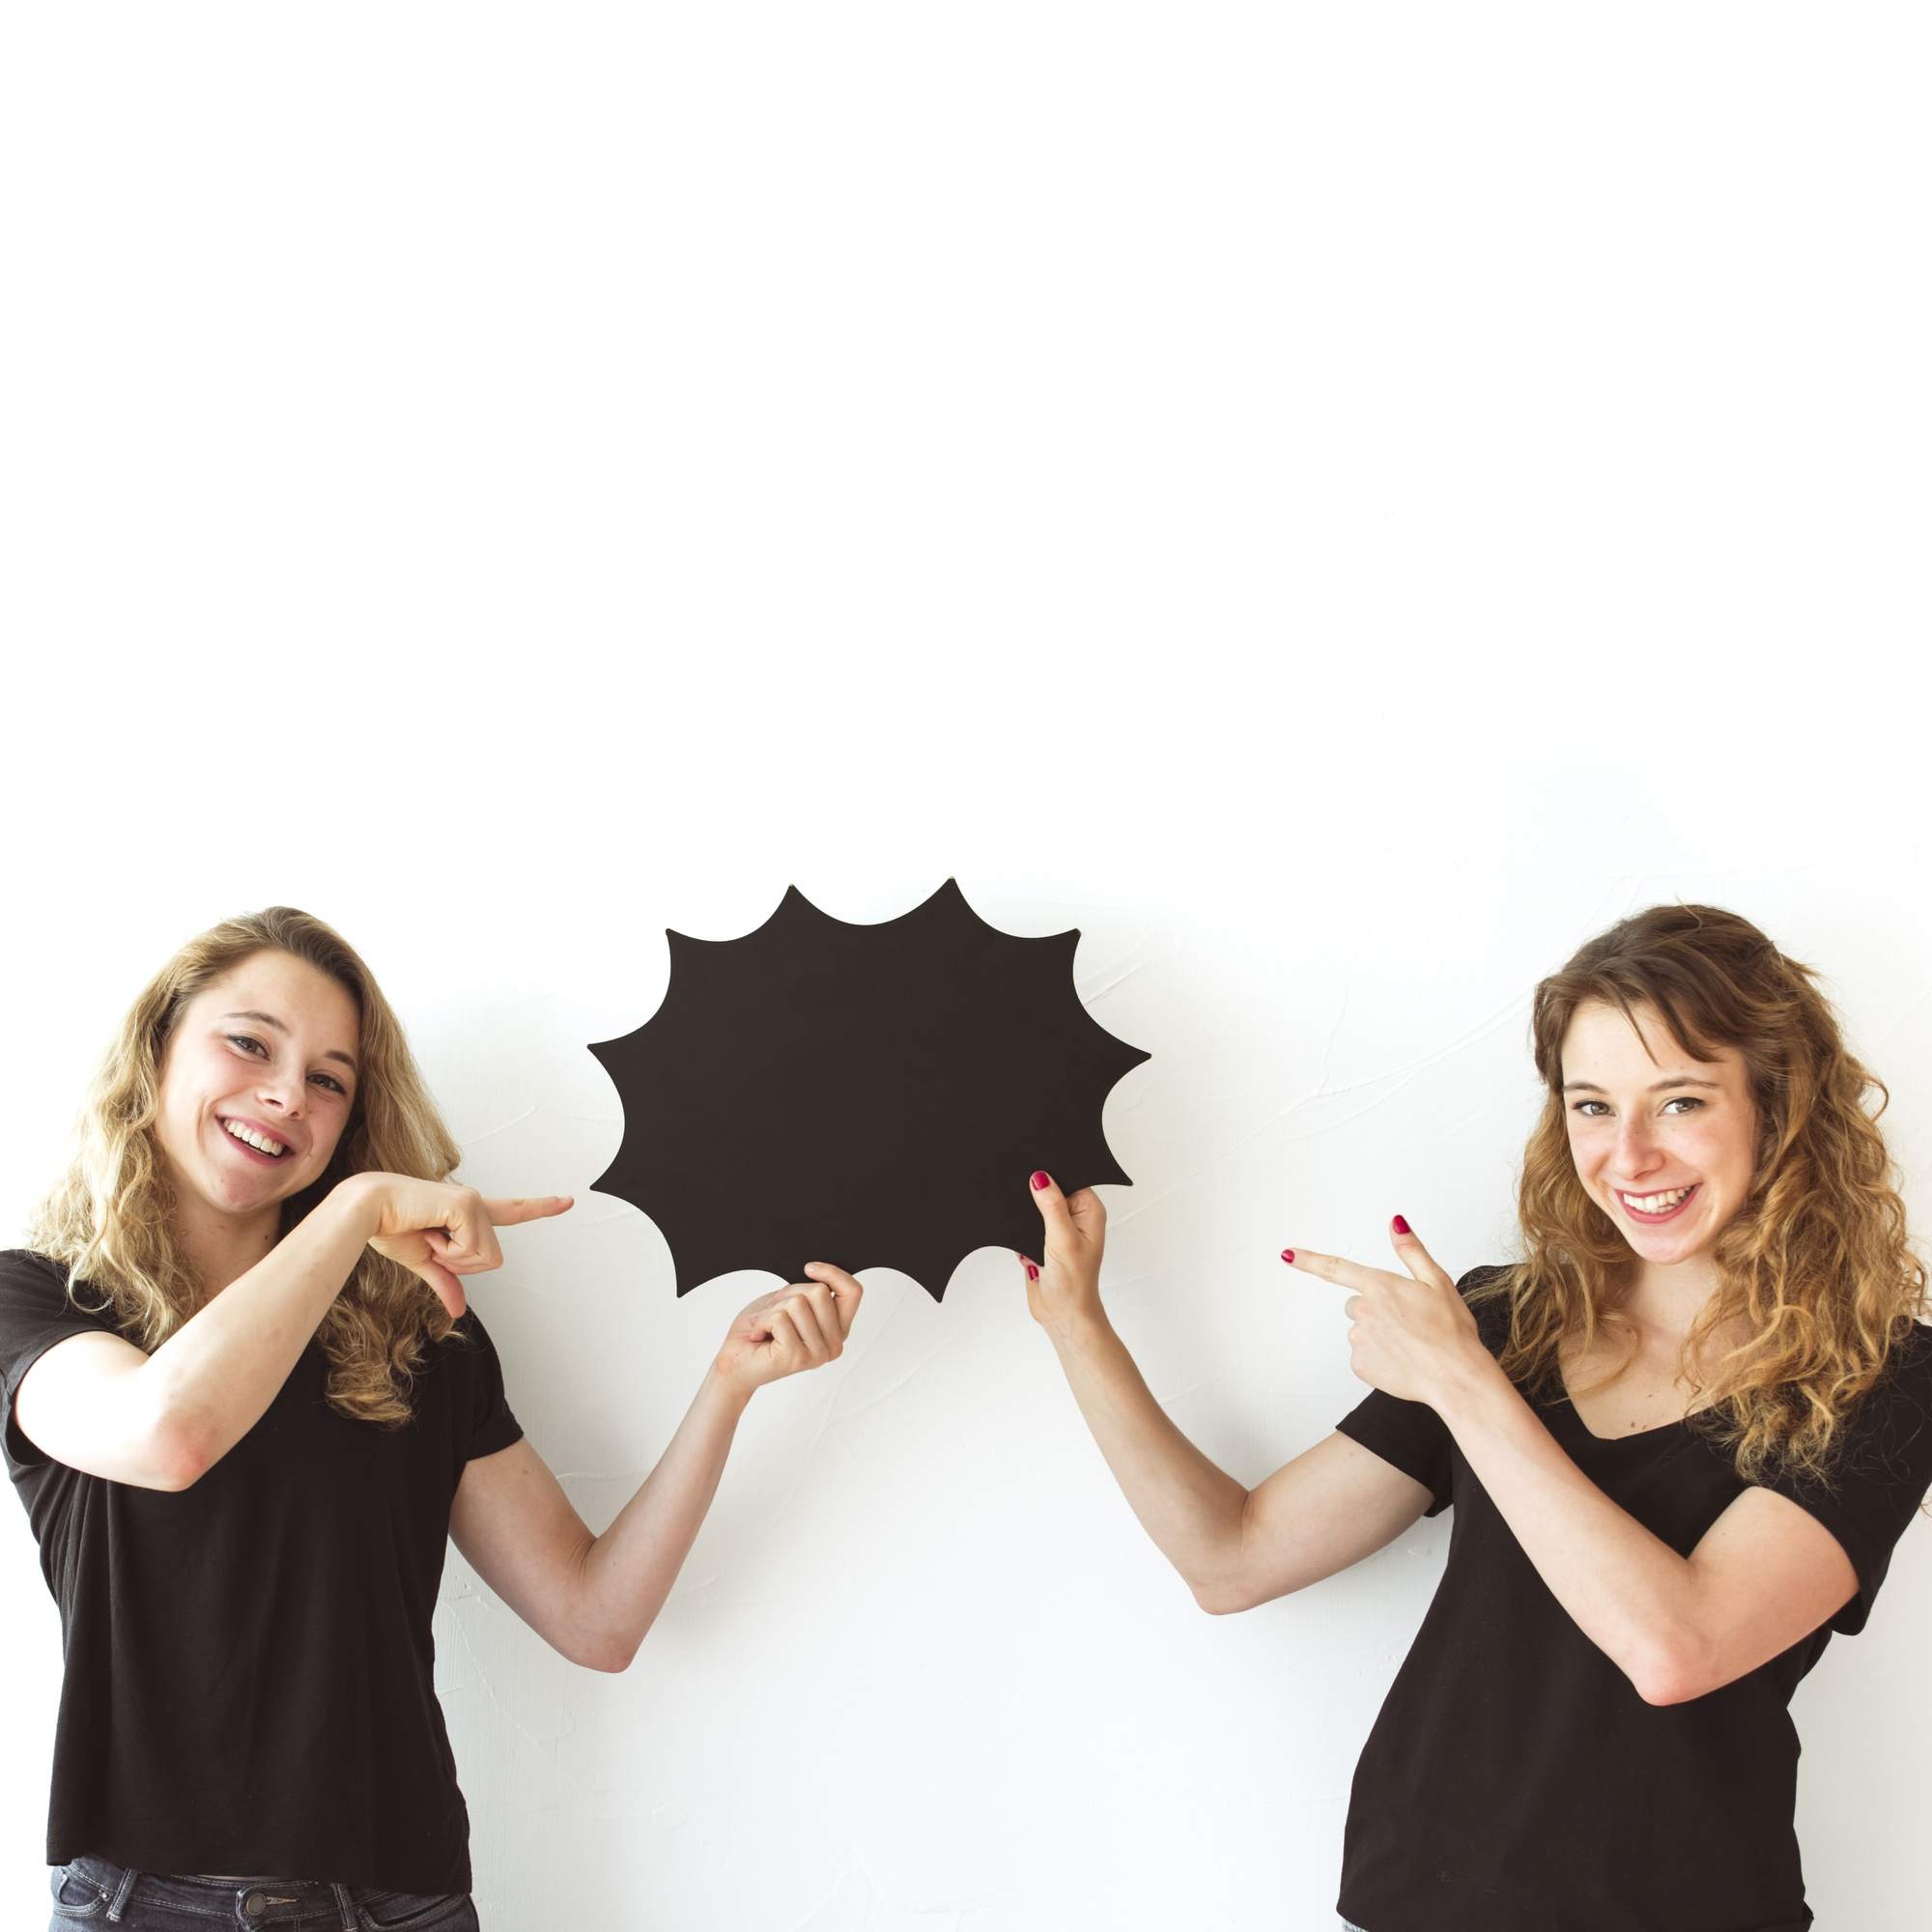 Two smiling sisters holding black speech bubble pointing fingers